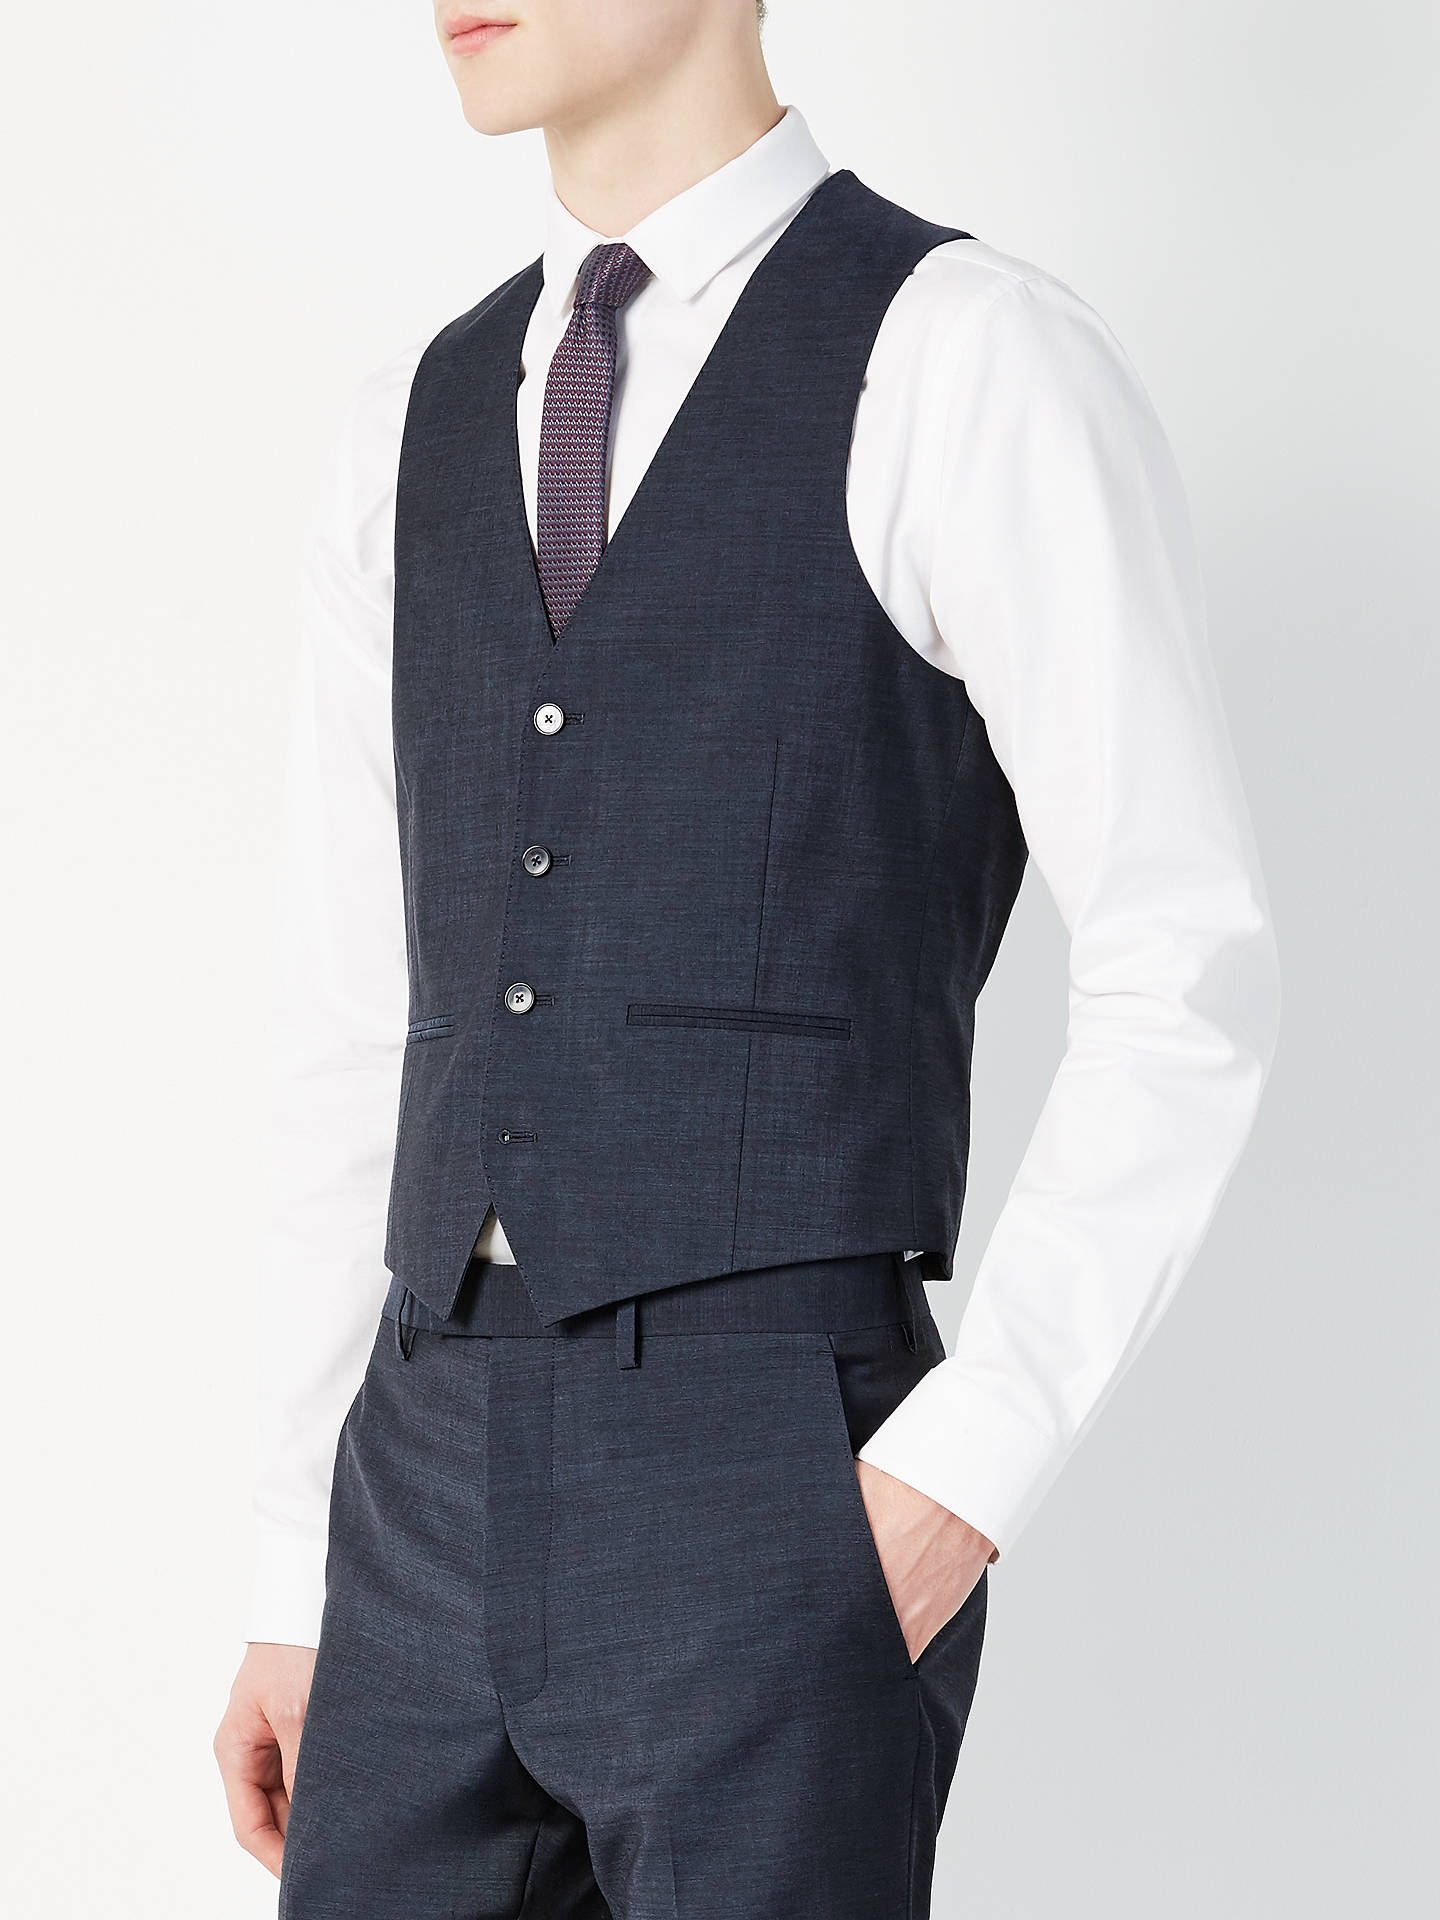 BuyKin Addison Tonic Slim Fit Waistcoat, Petrol, 36R Online at johnlewis.com